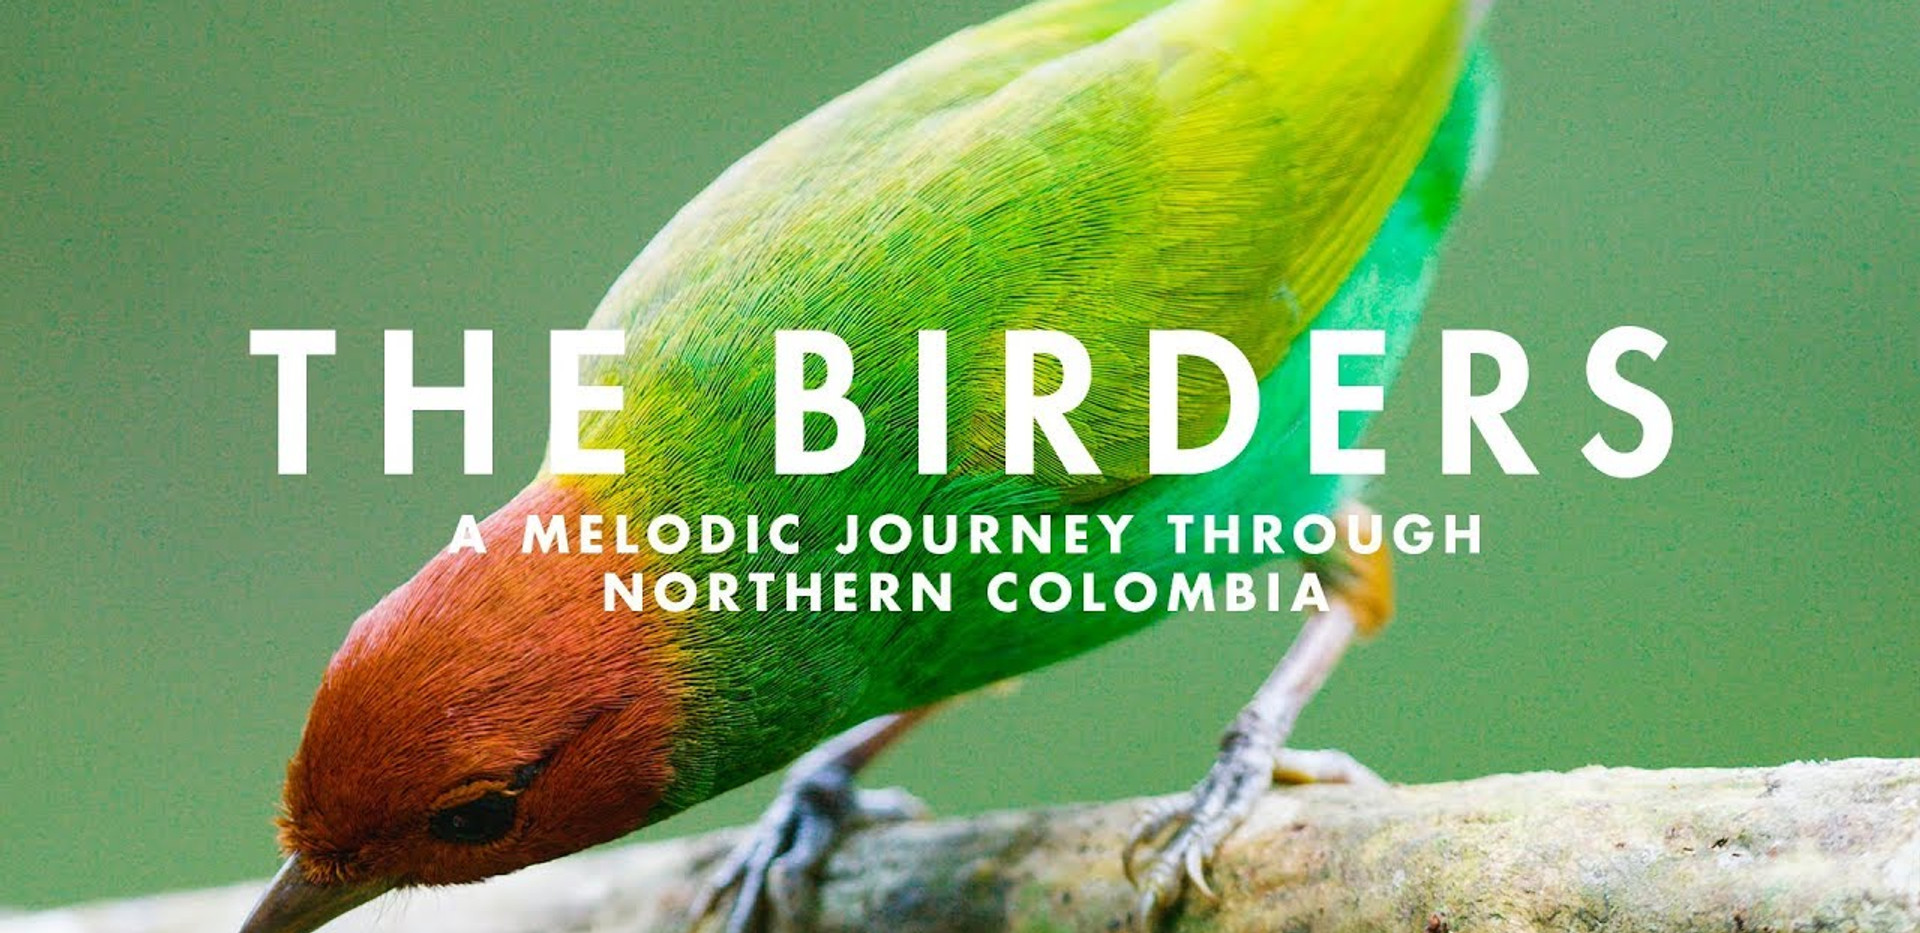 A documentary on birdwatching in northern Colombia